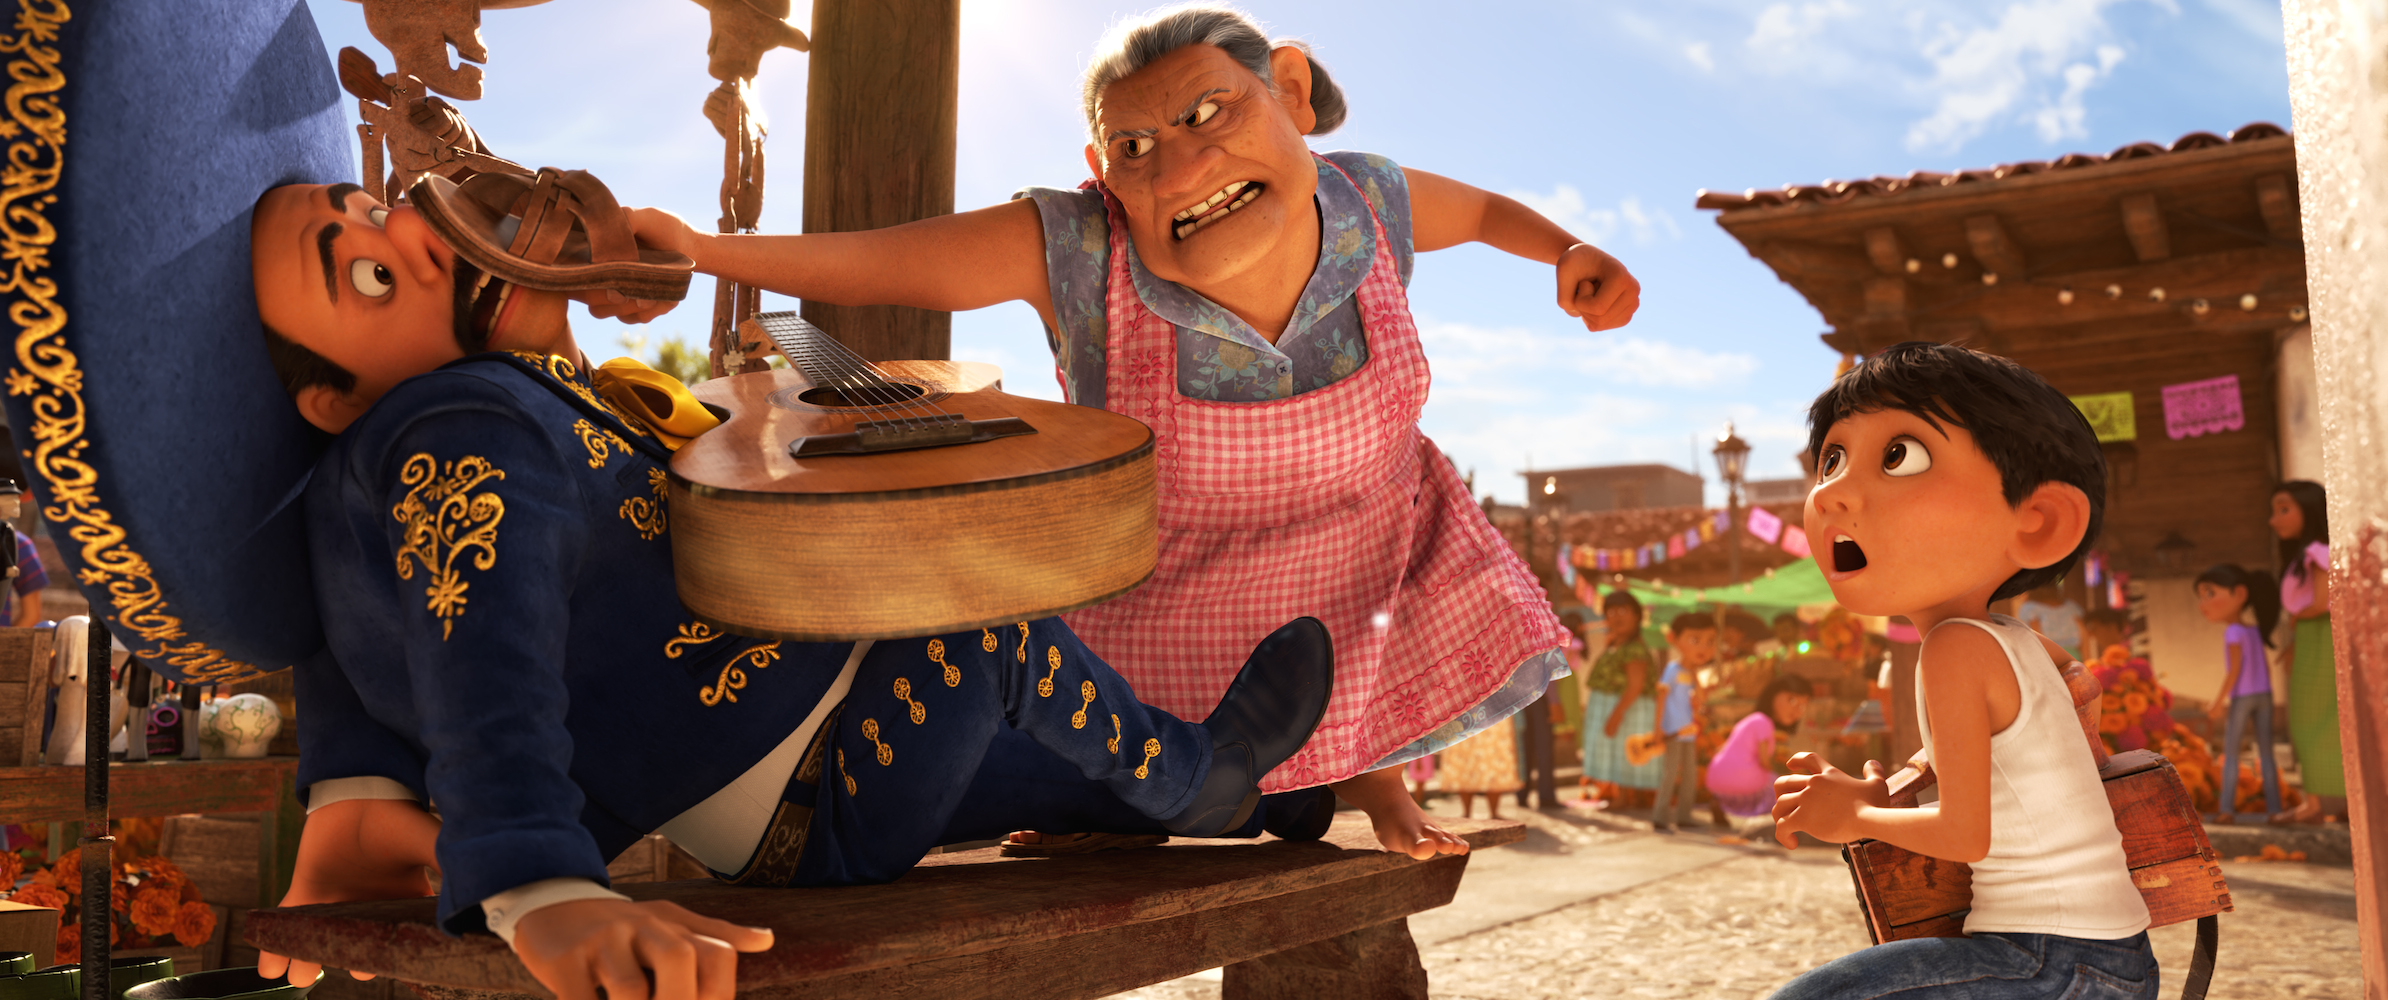 Meet the Real-Life Mexican Grandma Who Was the Model for Miguel's Abuelita in 'Coco'